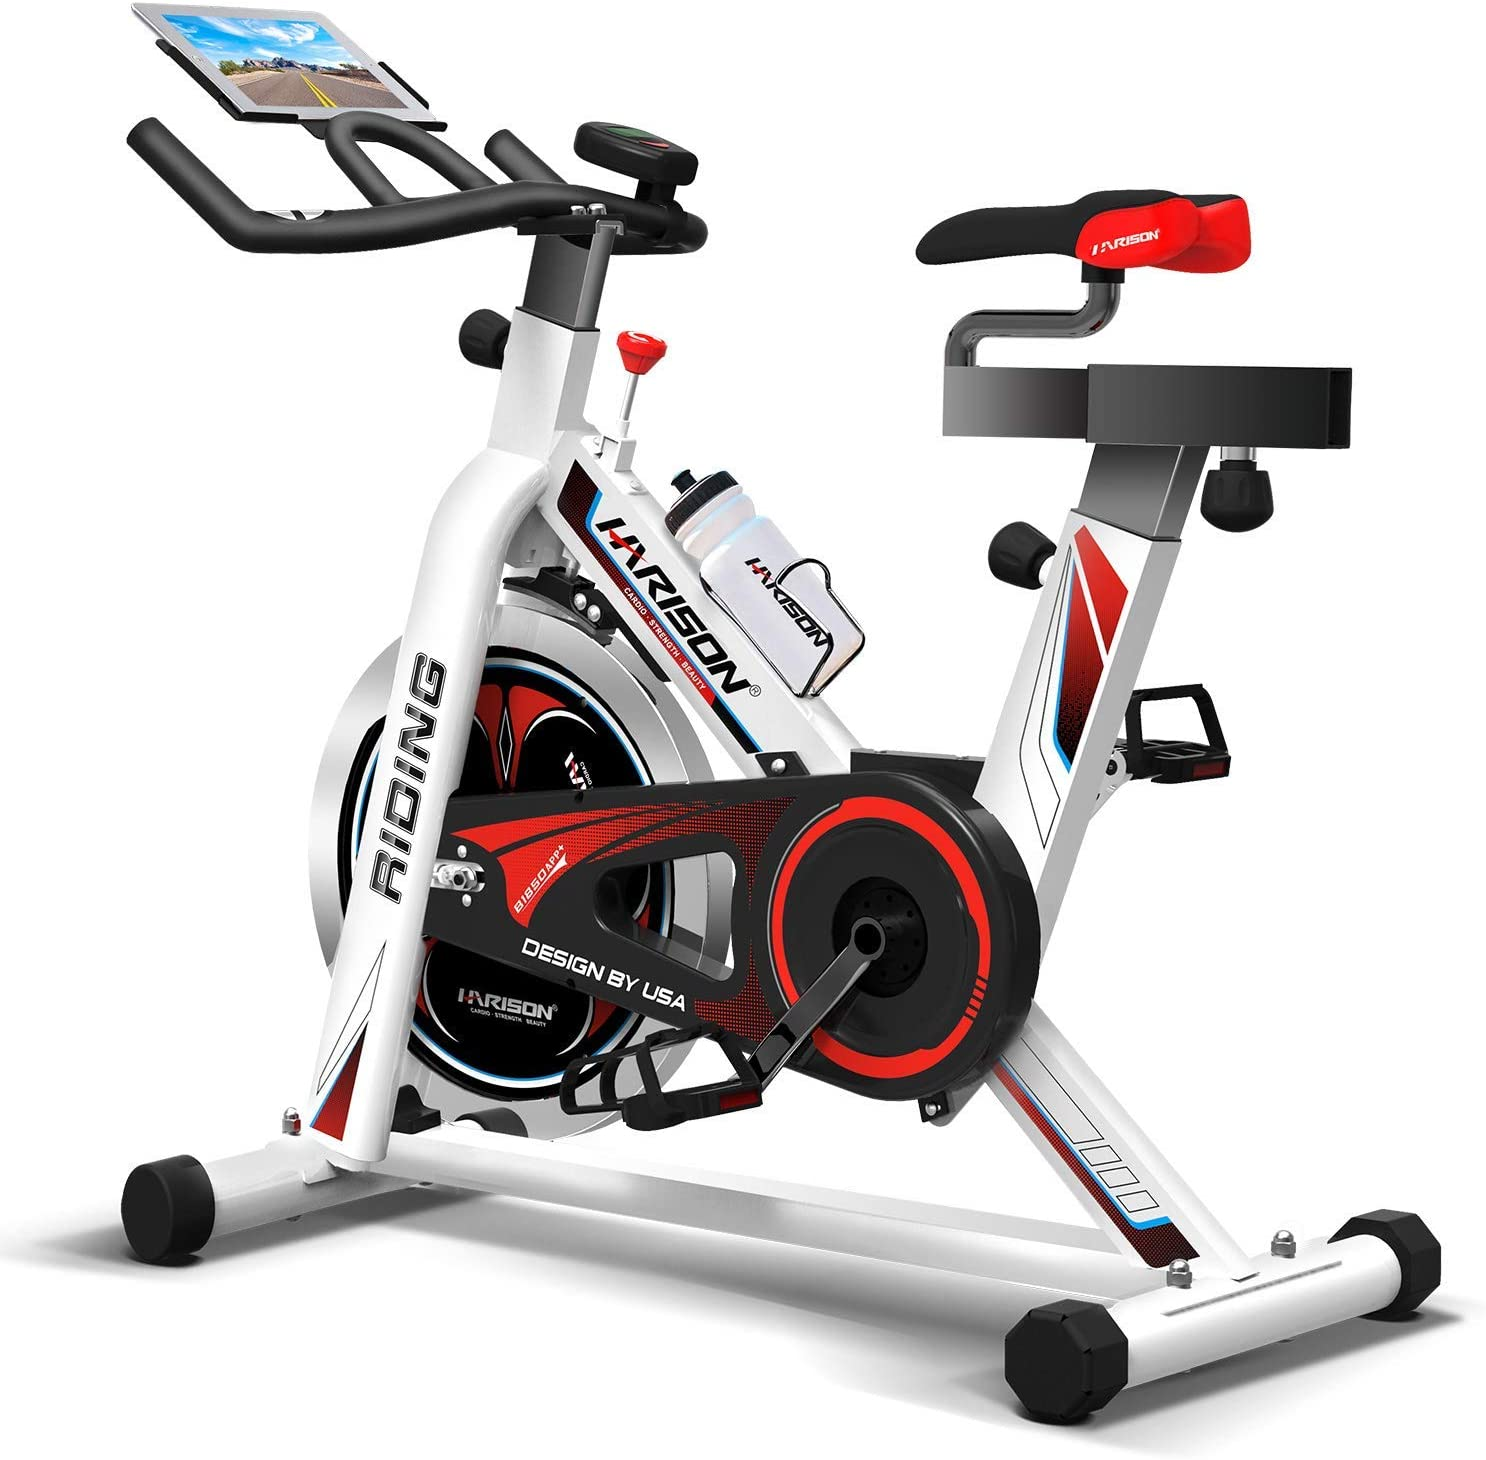 HARISON Pro Indoor Cycling Bike with Table Holder Exercise Bike Stationary Bicycle for Home Gym Cardio Workout